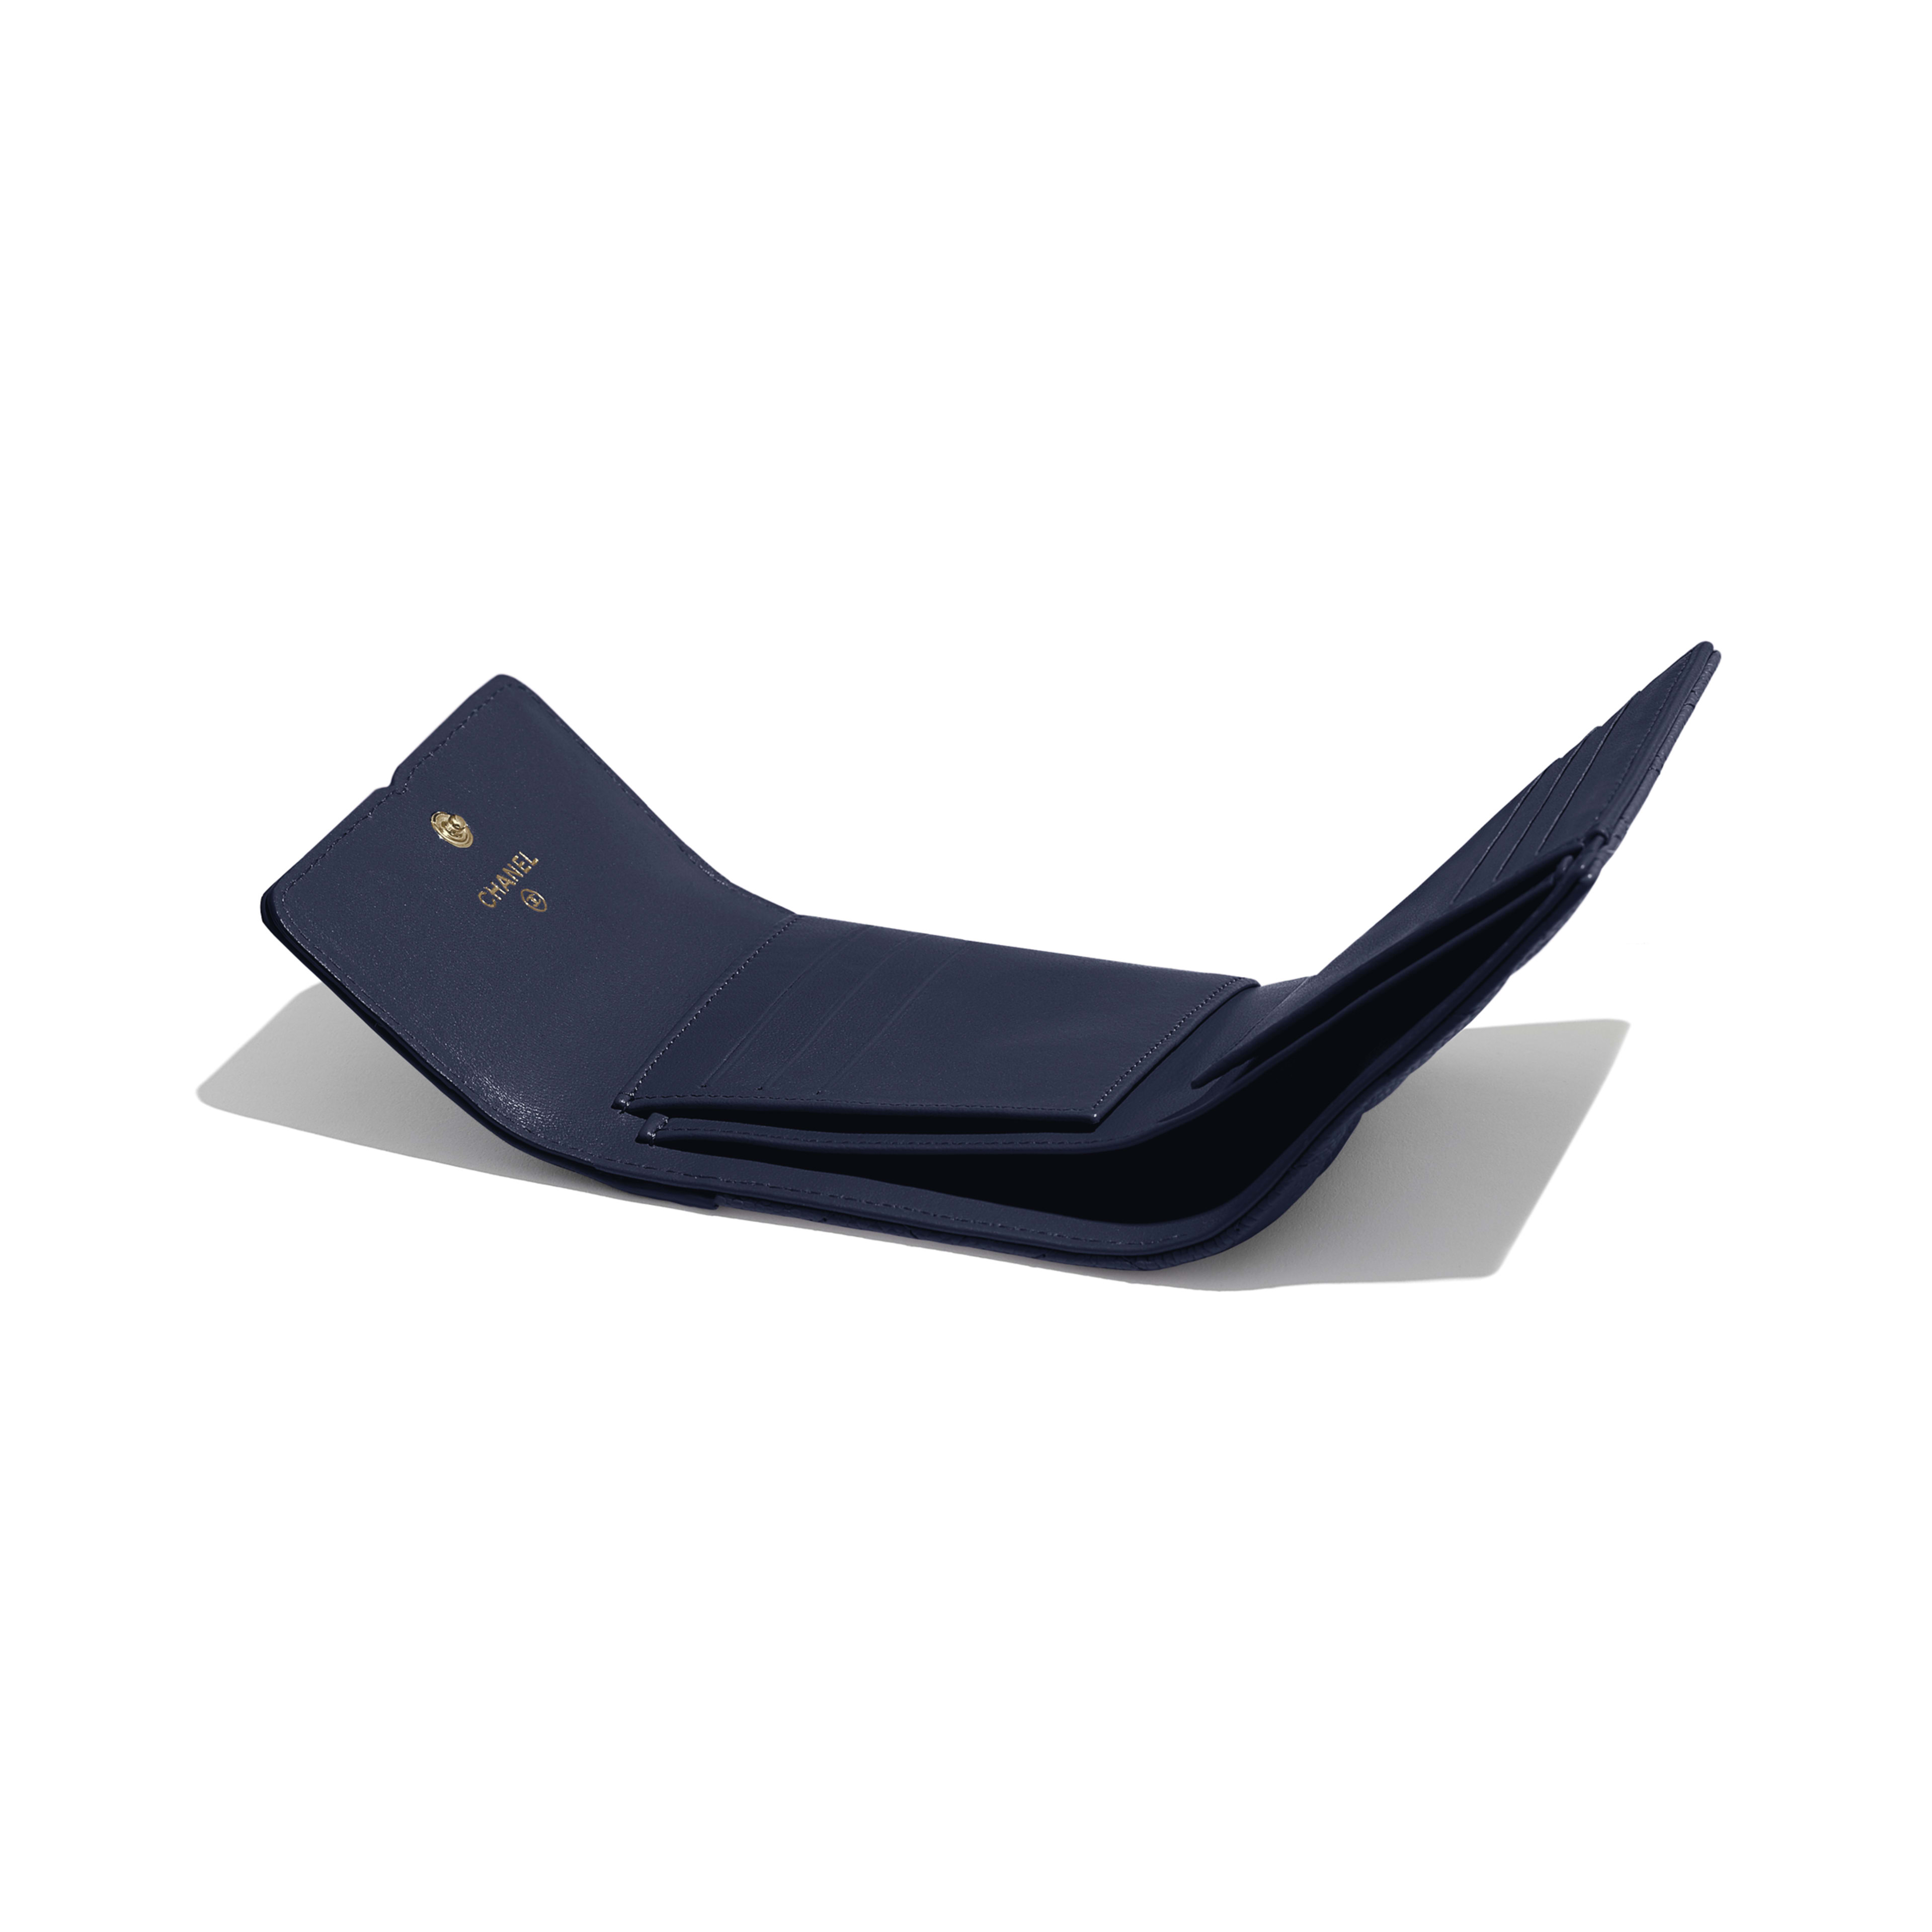 Small Flap Wallet - Navy Blue - Grained Calfskin & Gold-Tone Metal - Extra view - see full sized version